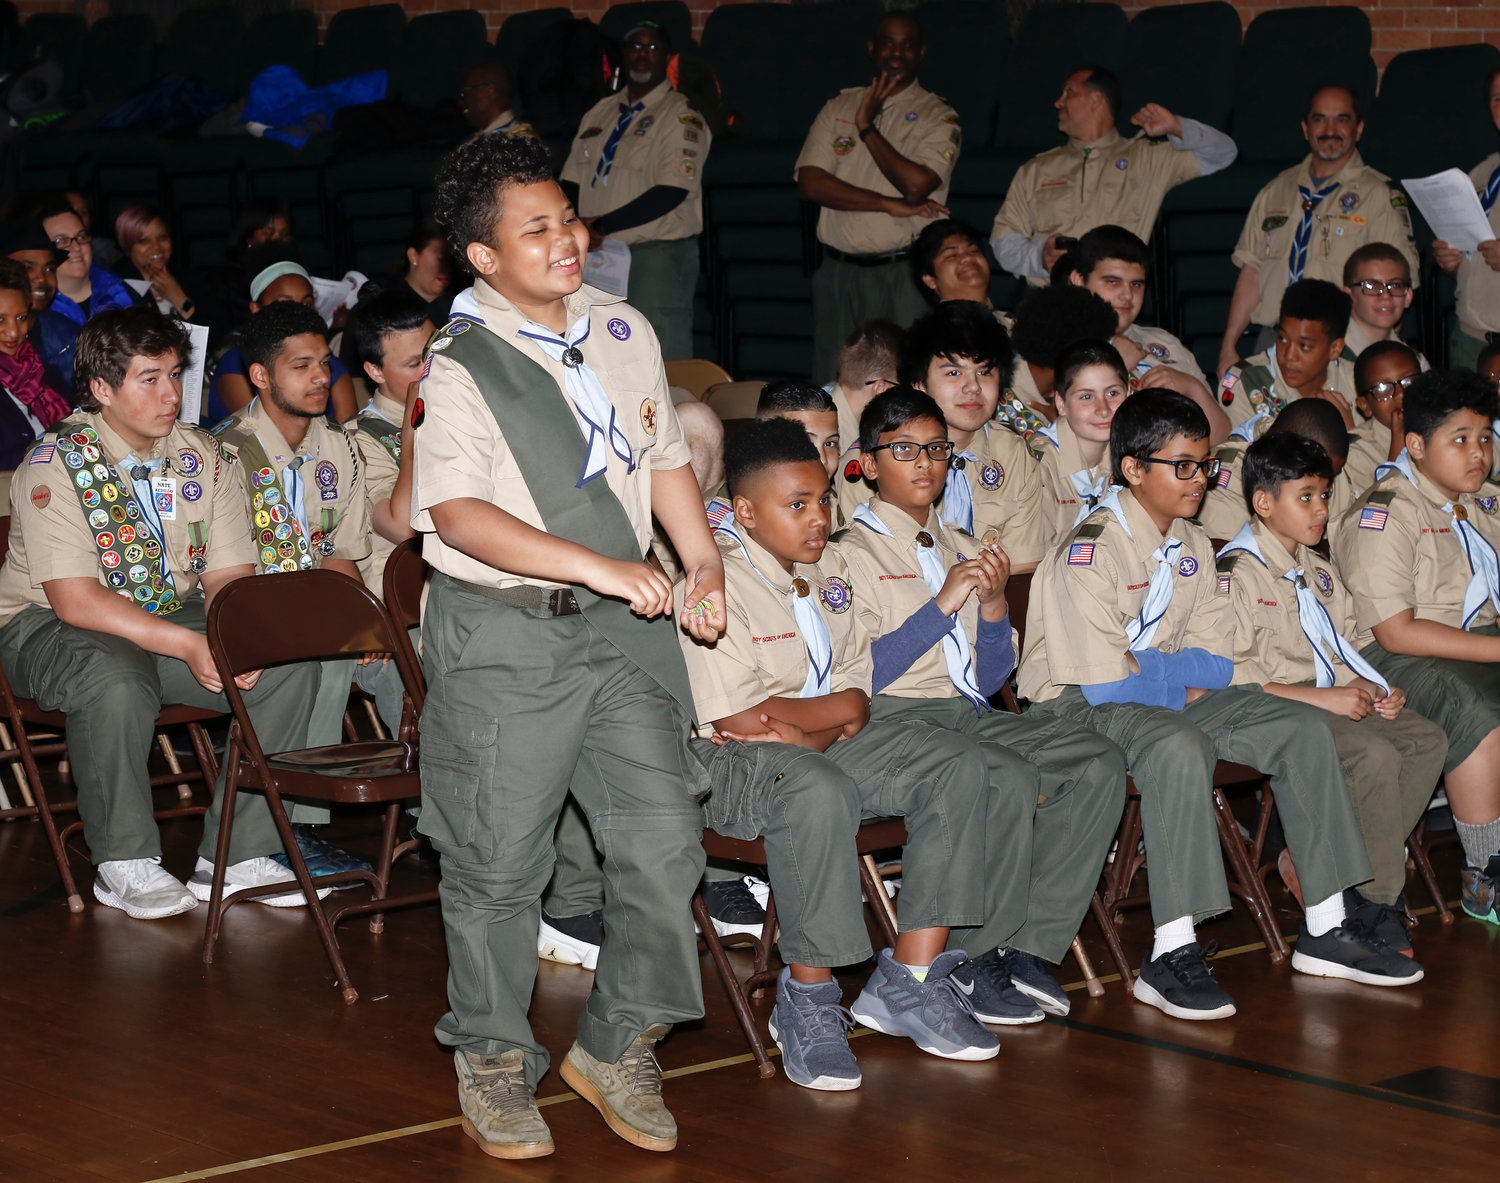 Second Class Rank Scout Michael Gay walked up to the podium to accept his Public Health Merit Badge. He also received badges for Citizenship in the Nation, Landscape Architecture, Moviemaking, Music and Personal Management.